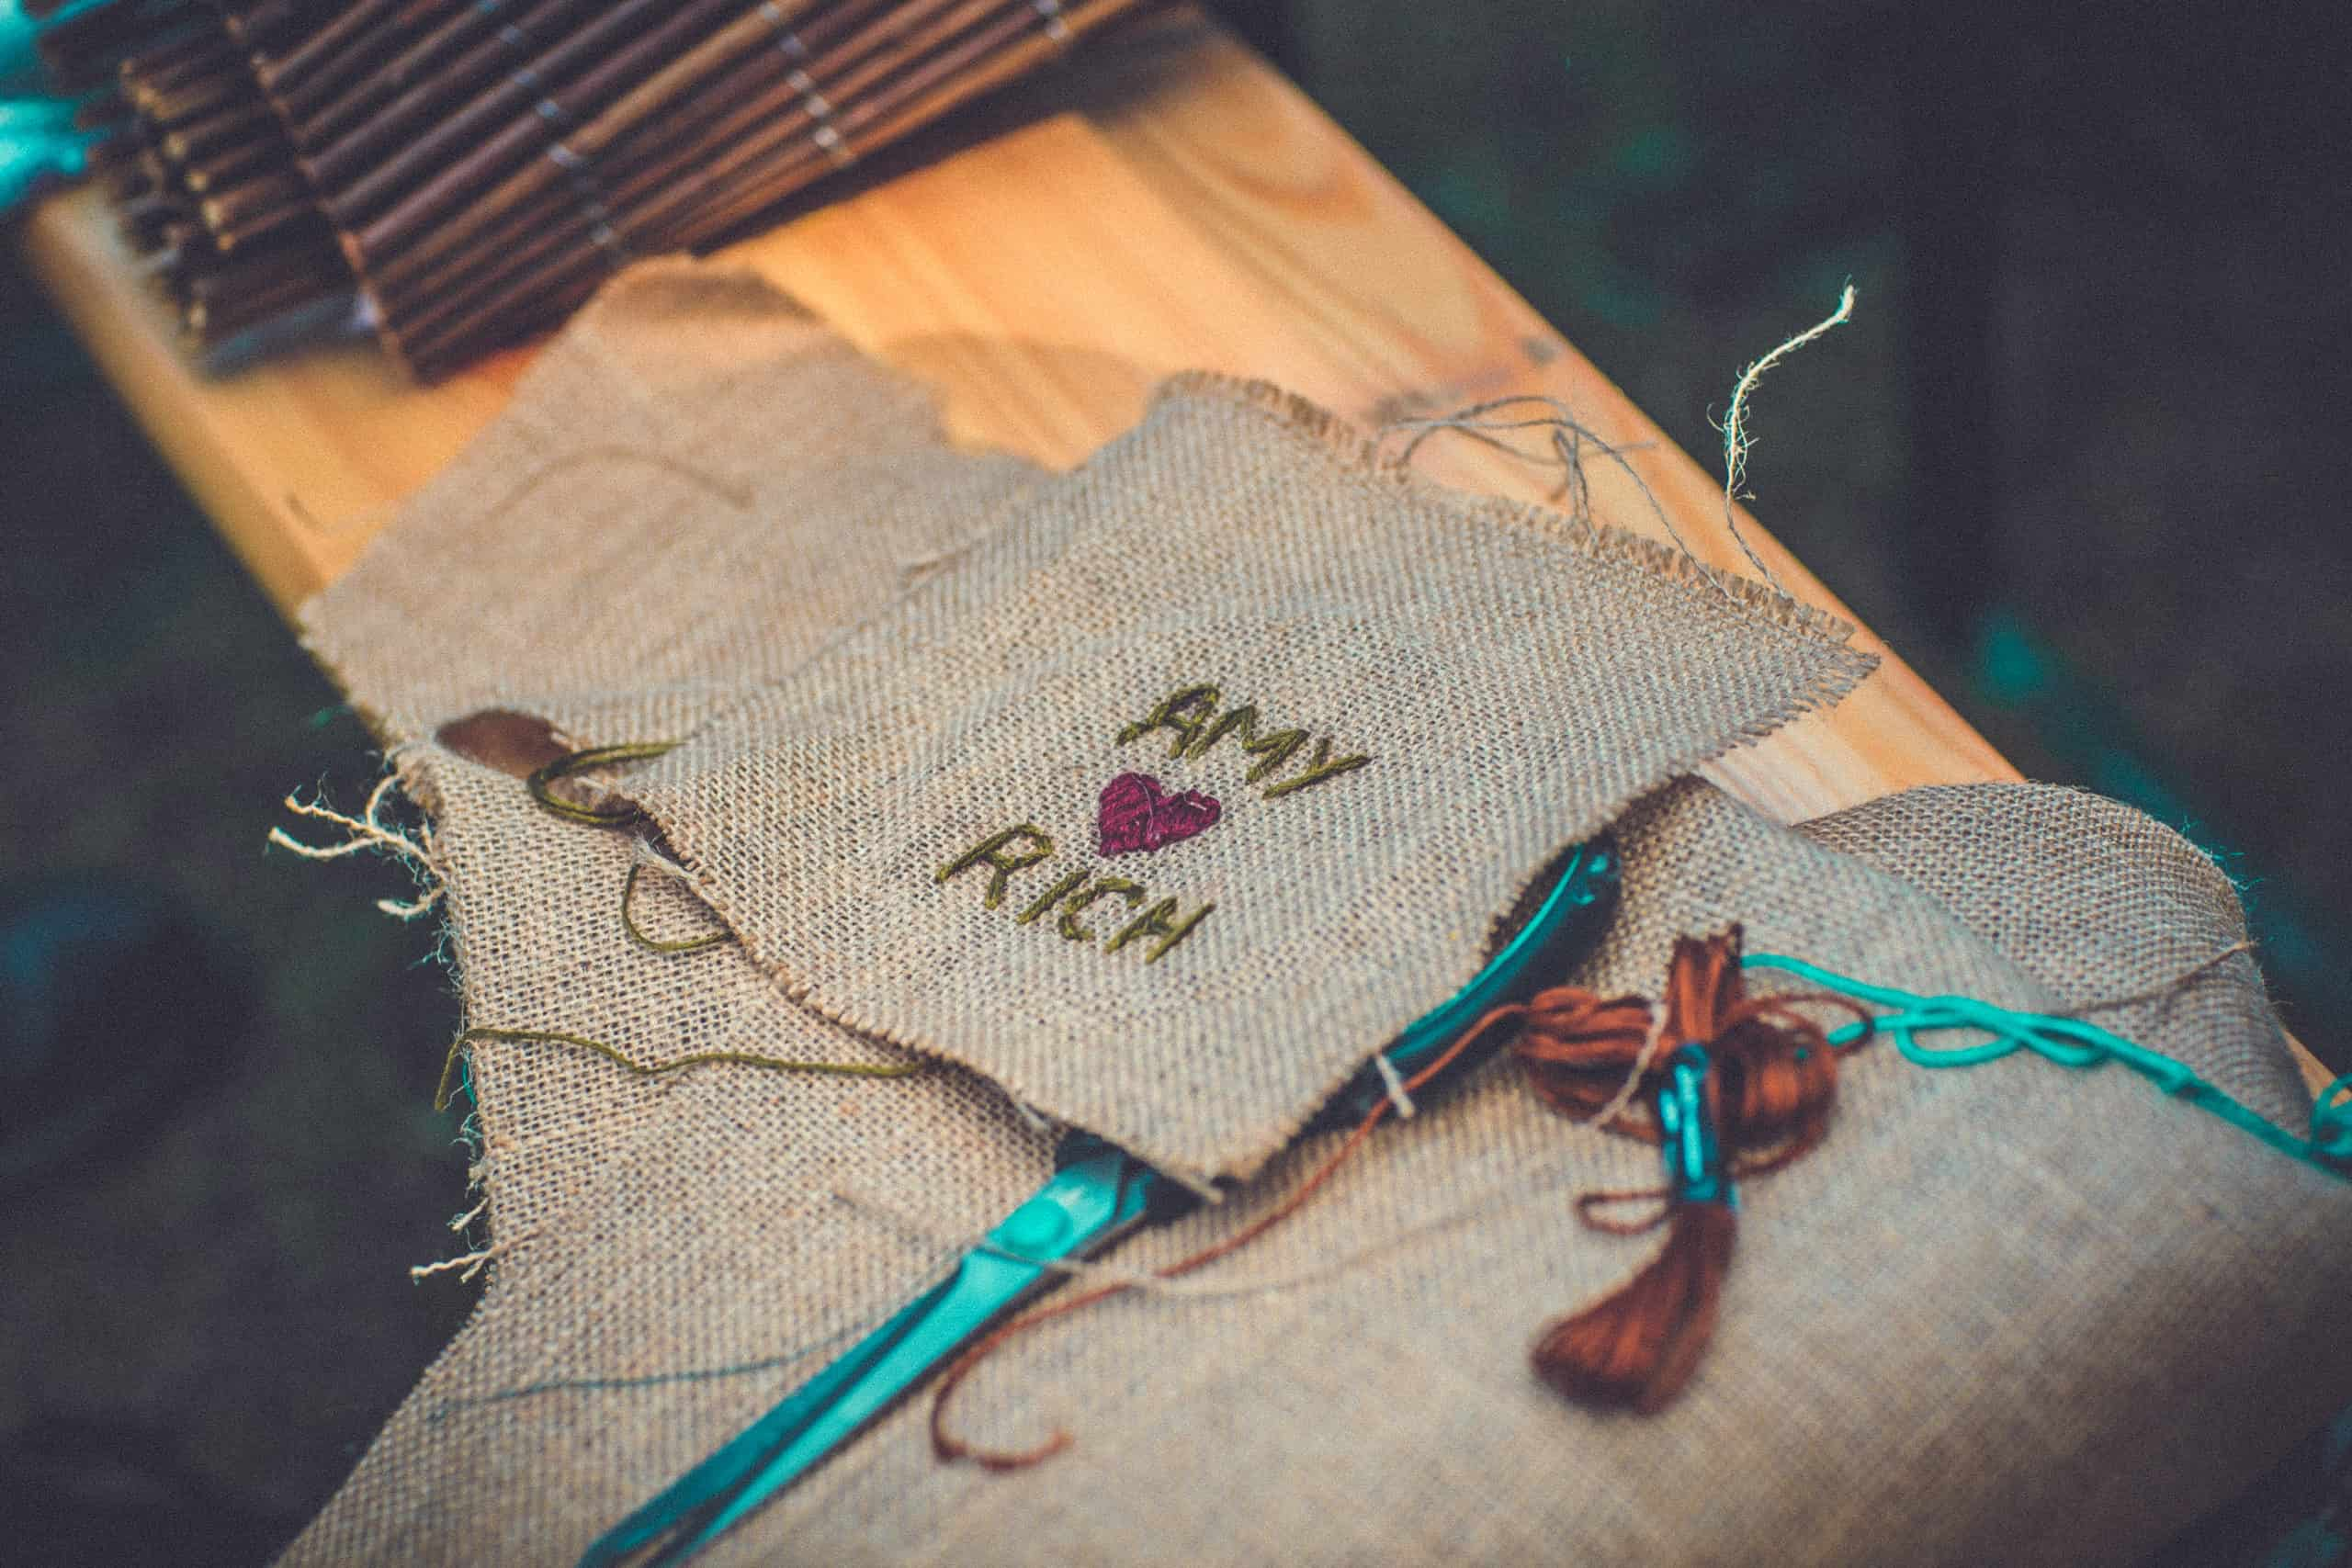 Close up of crafted embroidery at Camp Wildfire. A summer weekend break in a forest near London and Kent. An outdoor woodland retreat featuring adventure activities, live music, DJs, parties and camping. Half summer adventure activity camp, half music festival, for adults only.